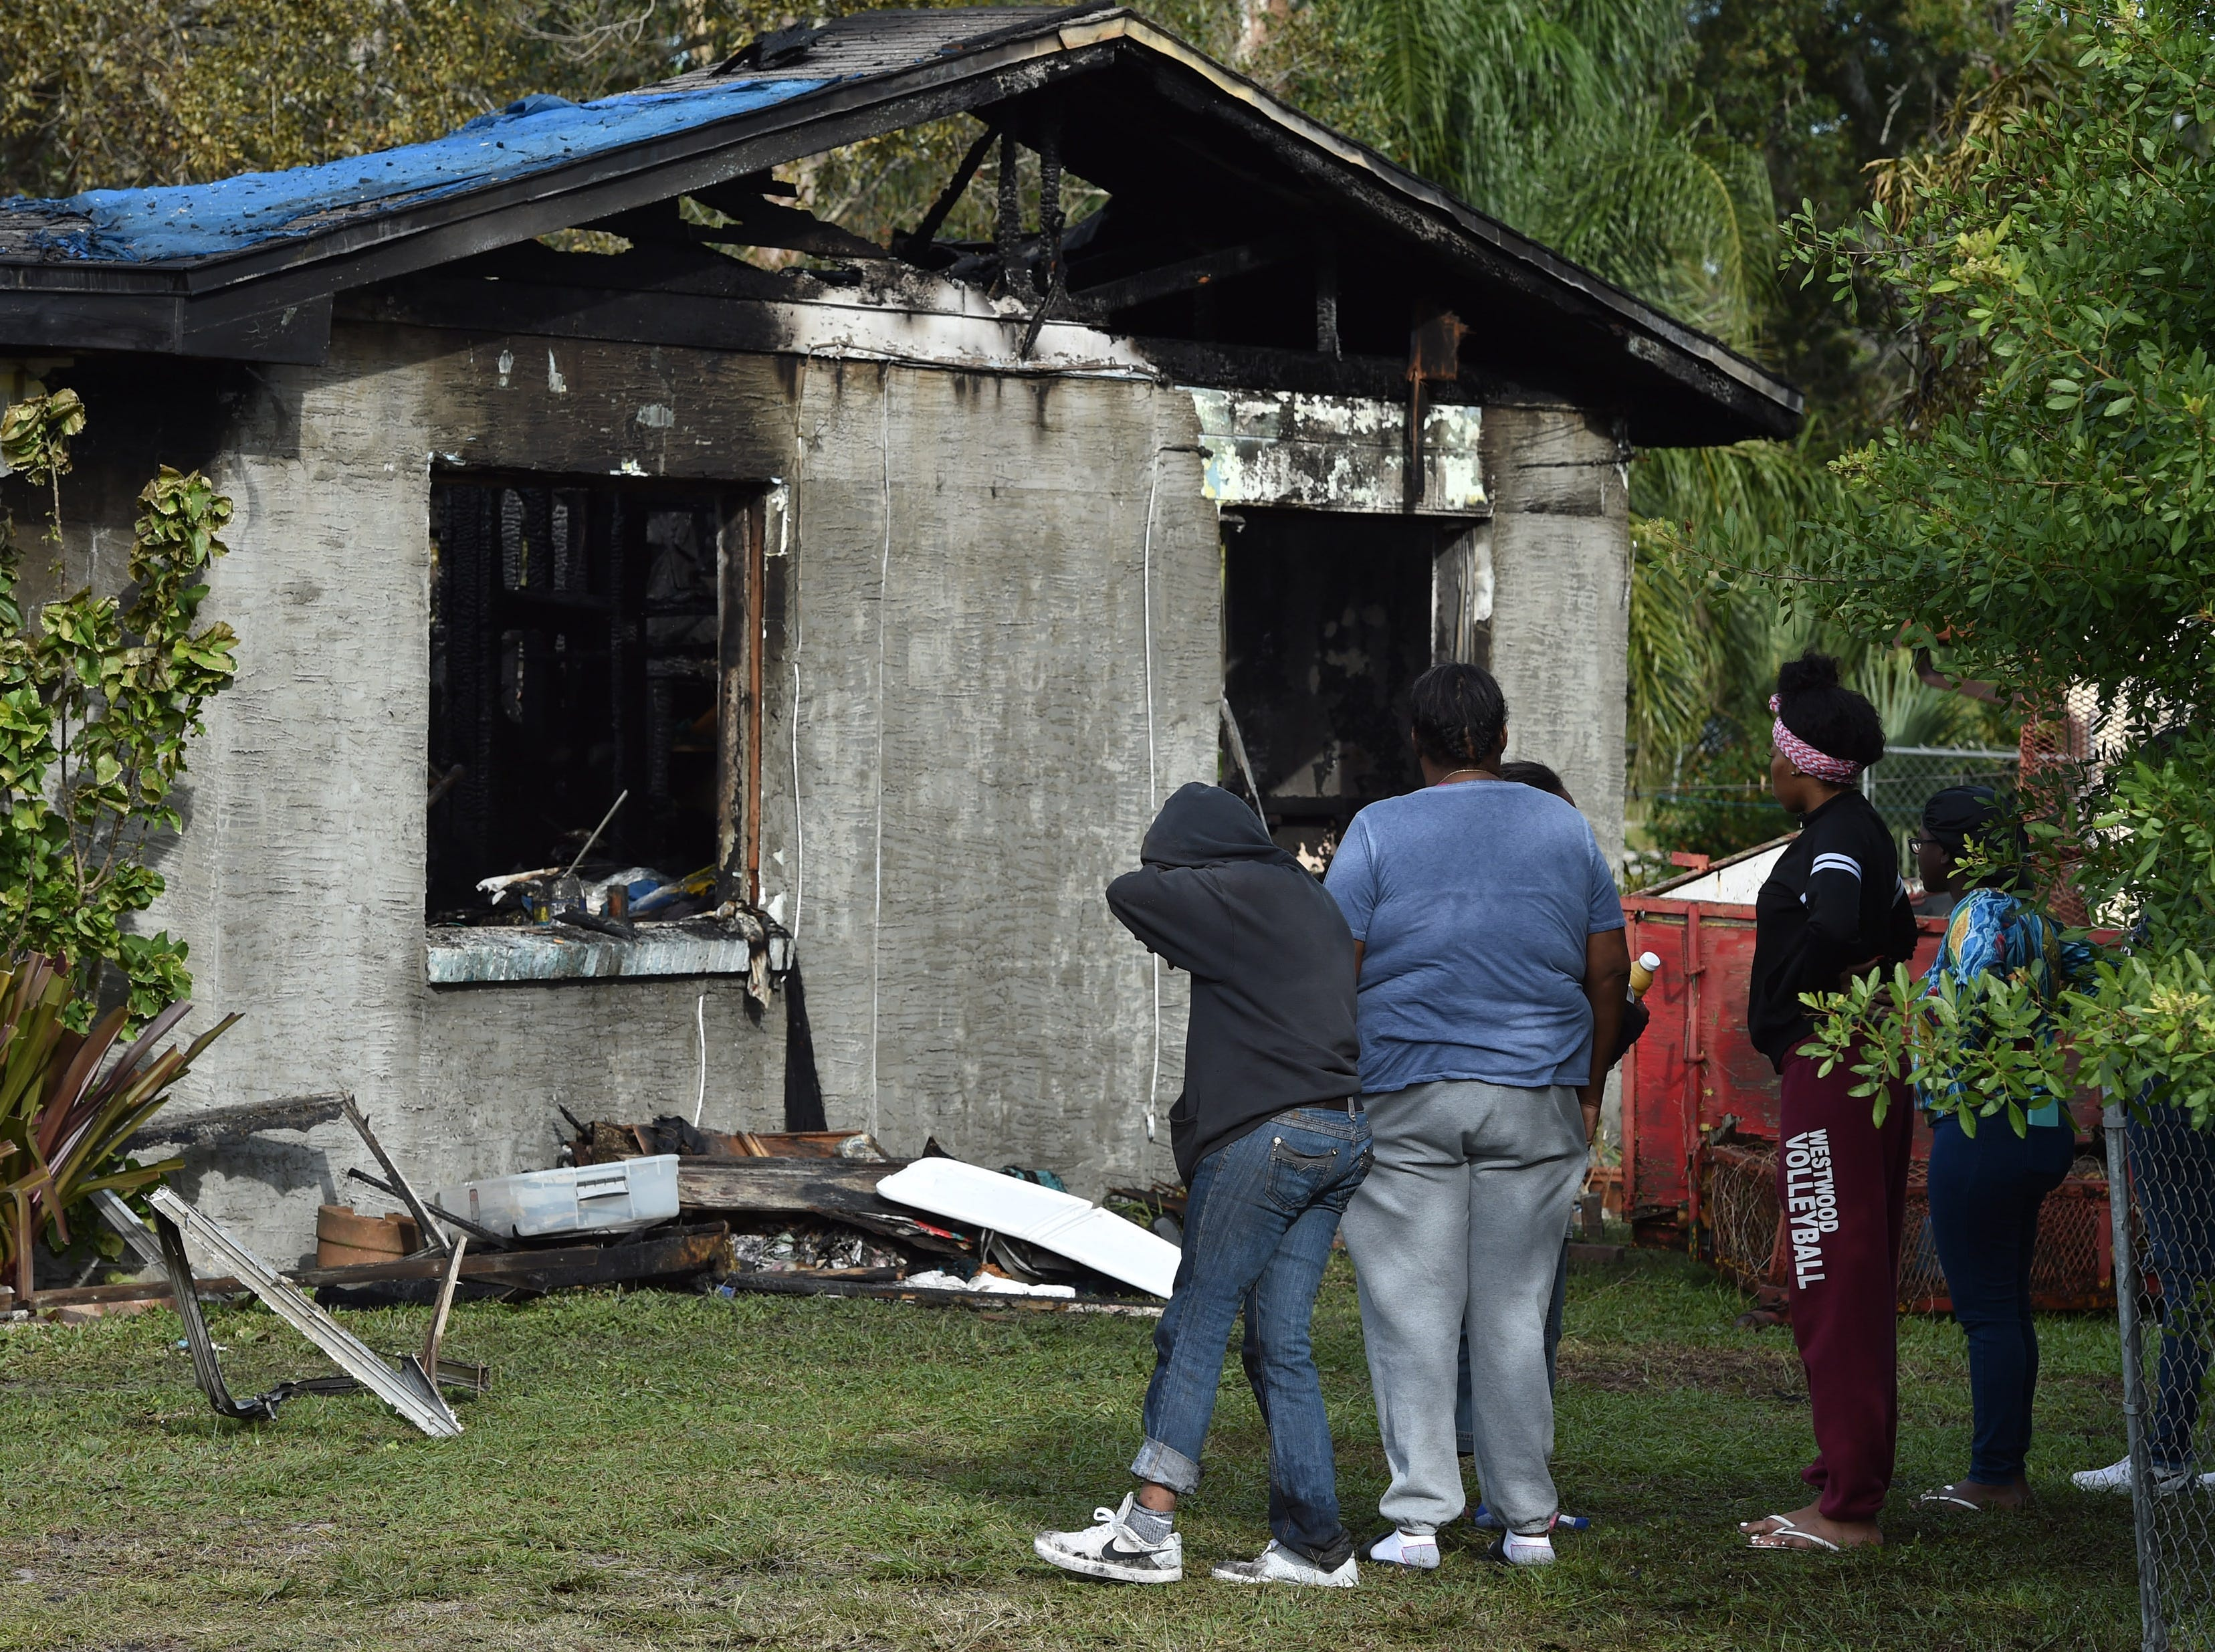 St. Lucie County Fire District firefighters sort through remains inside a home in the 2800 block of Avenue B on Friday, Nov. 30, 2018, during the investigation of the fire that completely destroyed the home shortly after 2 a.m. in Fort Pierce.